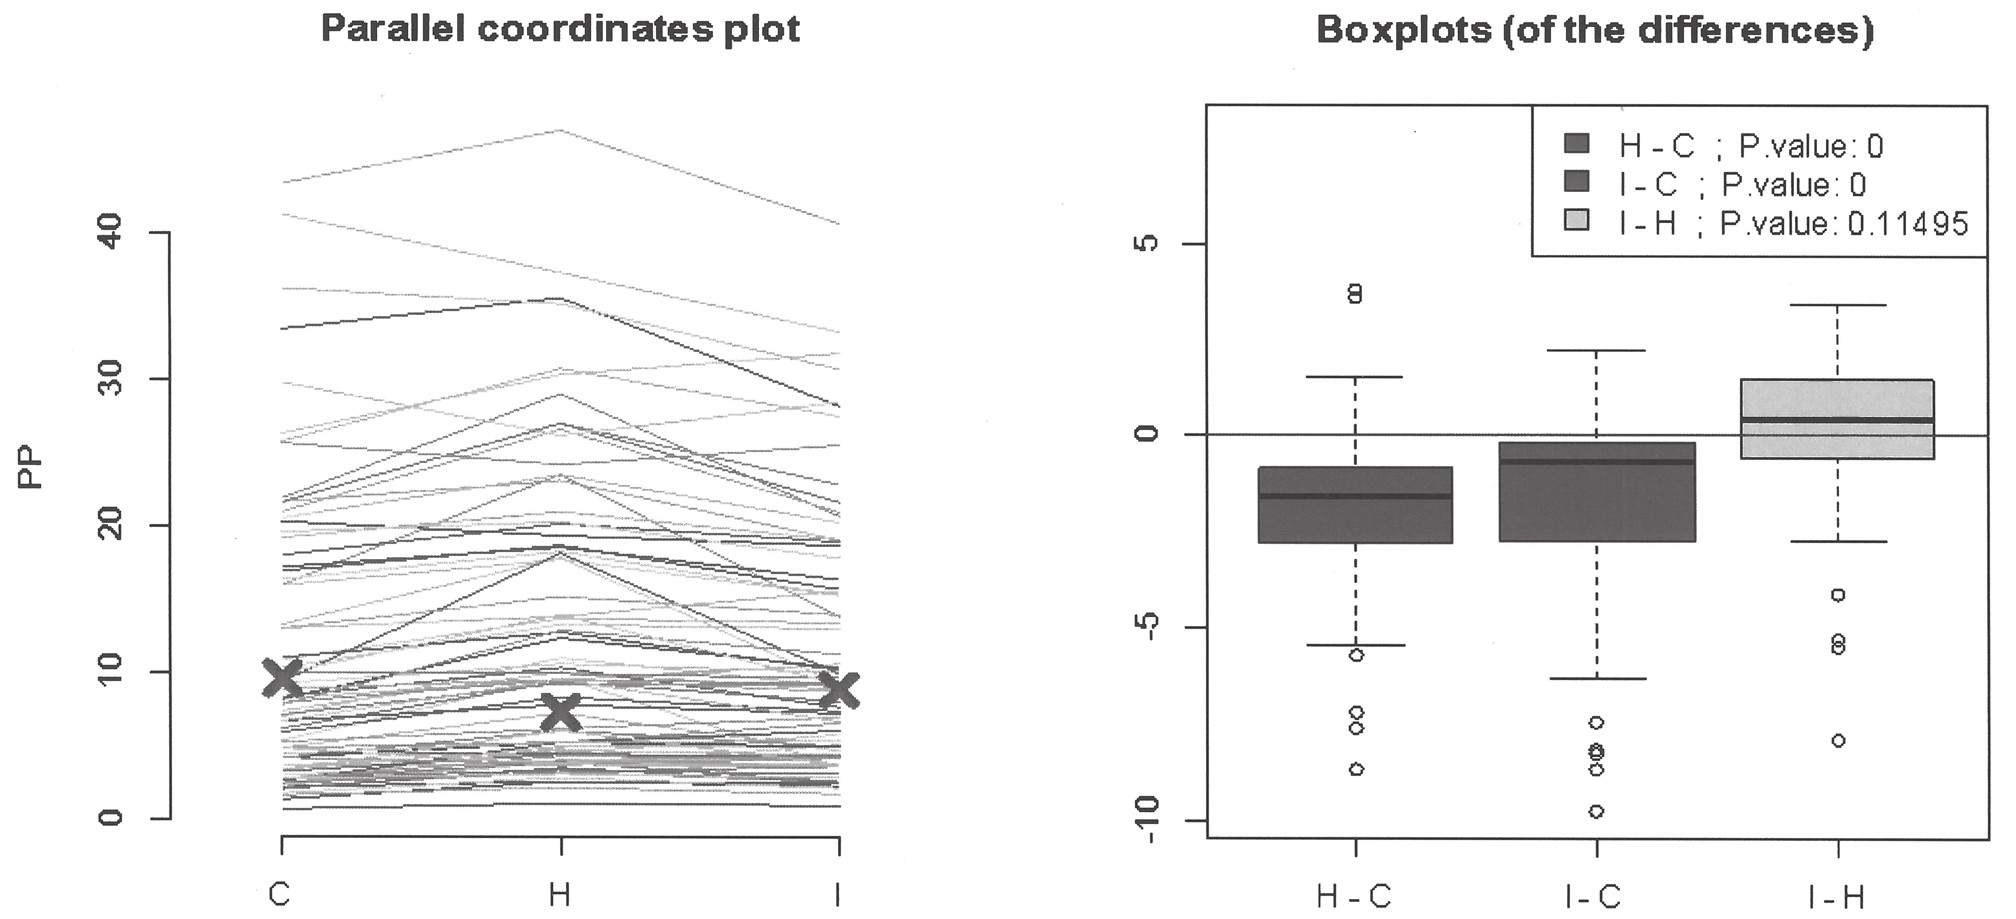 Assessment of mutual differences between analyzers on the type of paraprotein using parallel coordinates plot and